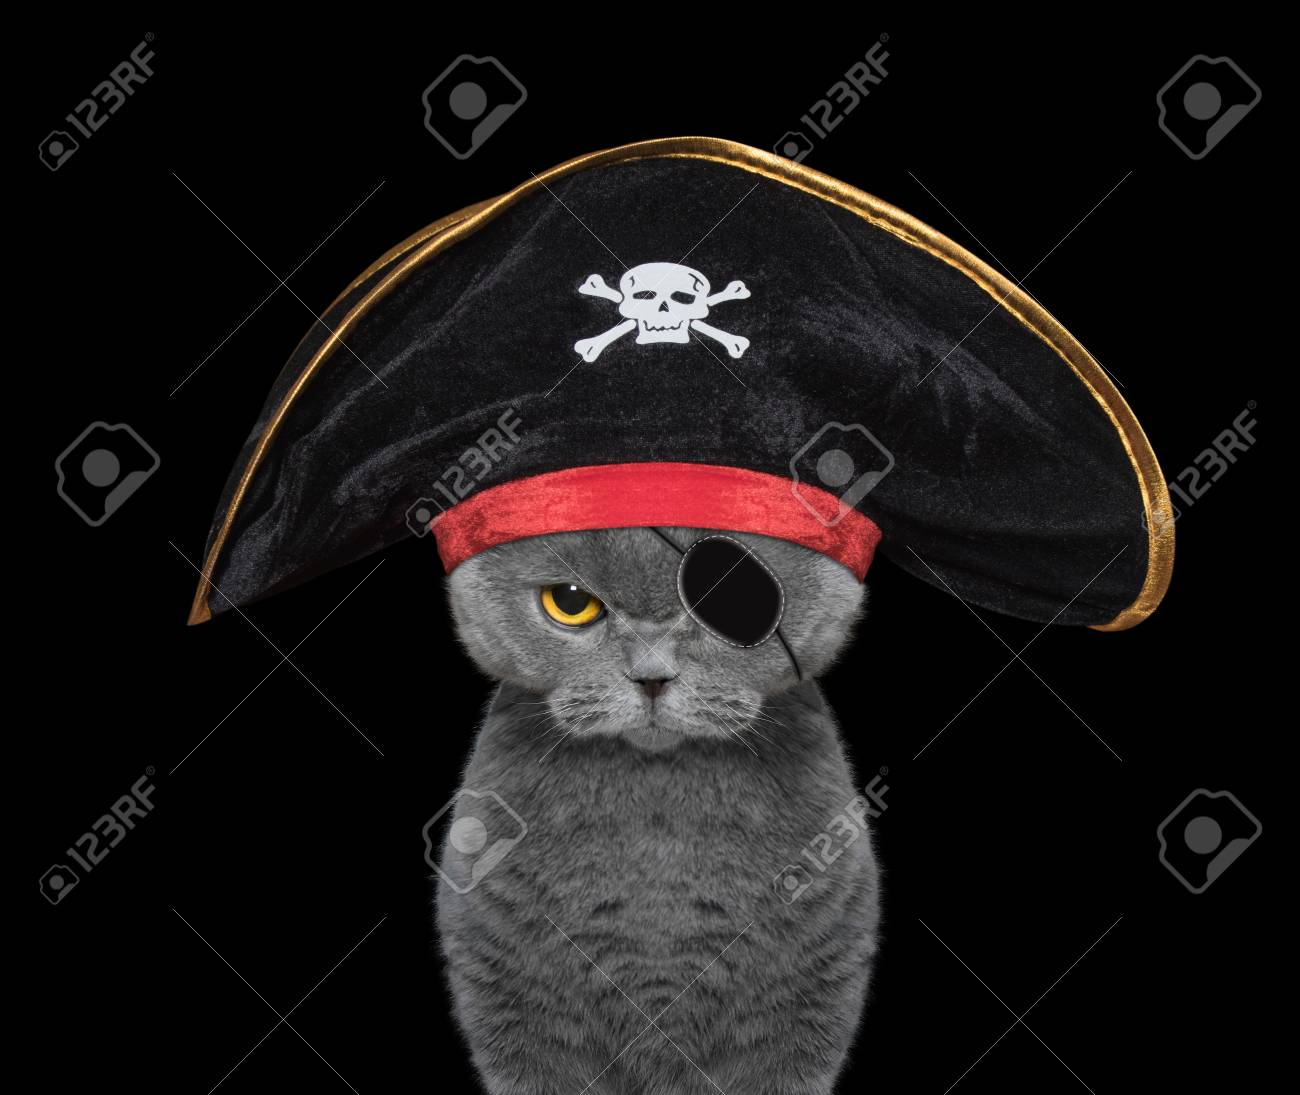 dace5c65167 cute cat in a pirate costume -- isolated on black Stock Photo - 63596630